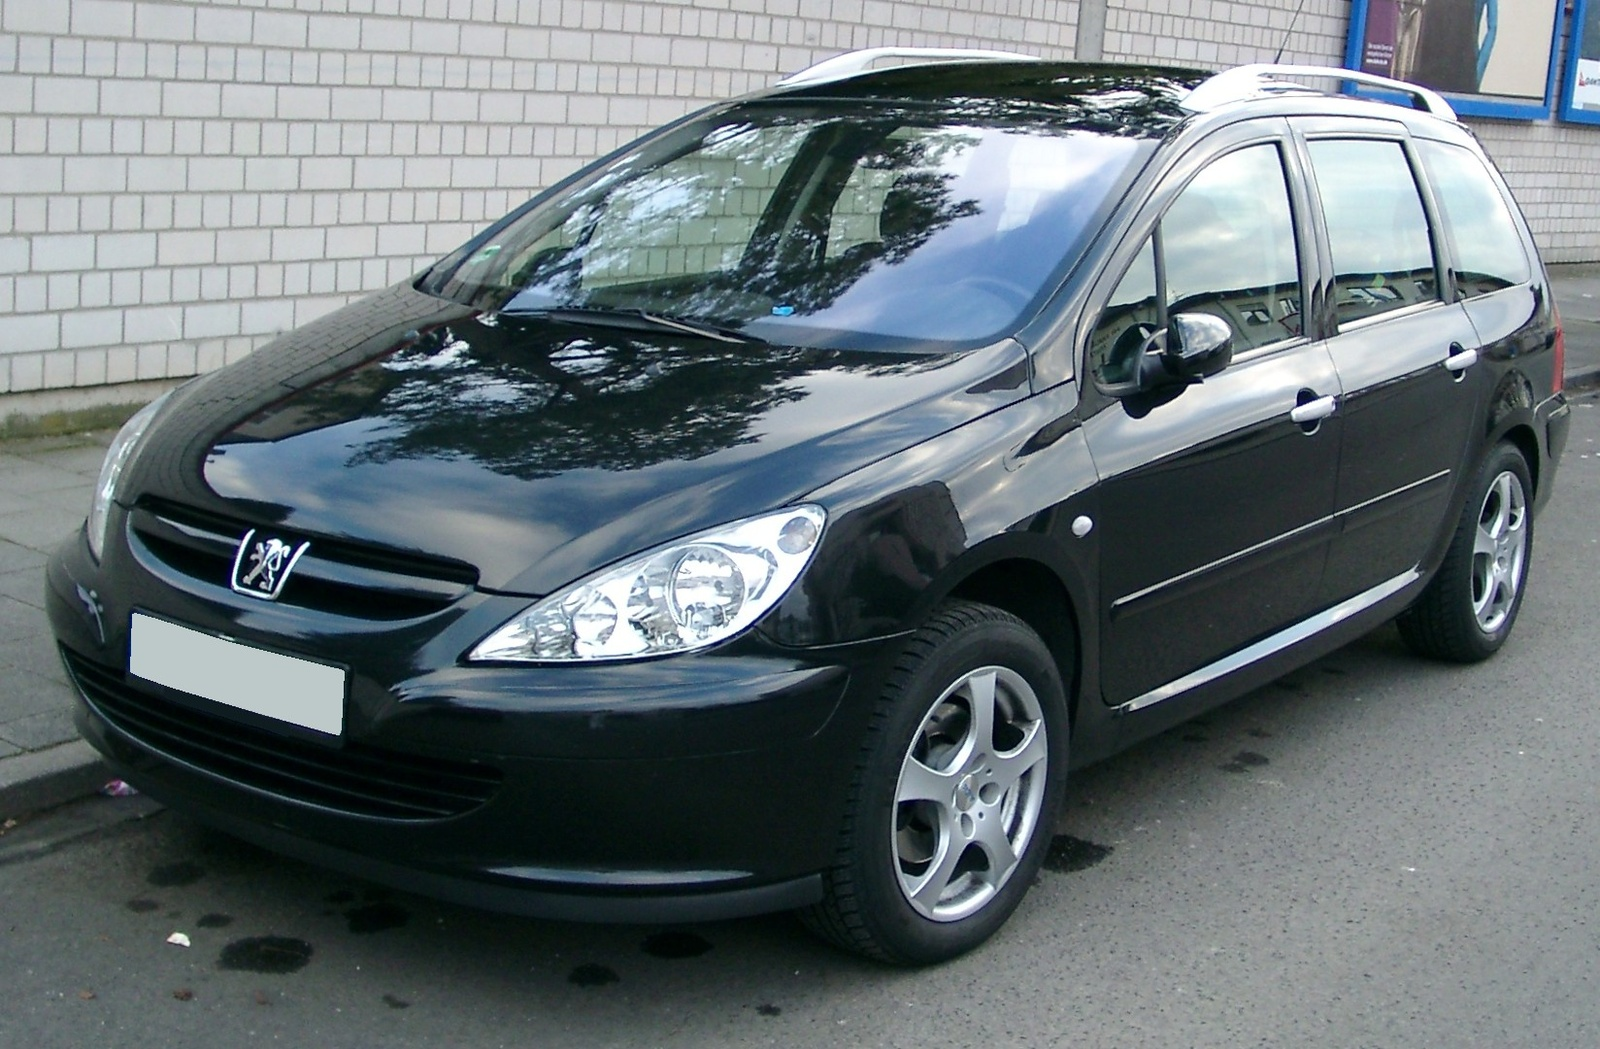 2006 Peugeot 307 Photos, Informations, Articles - BestCarMag.com